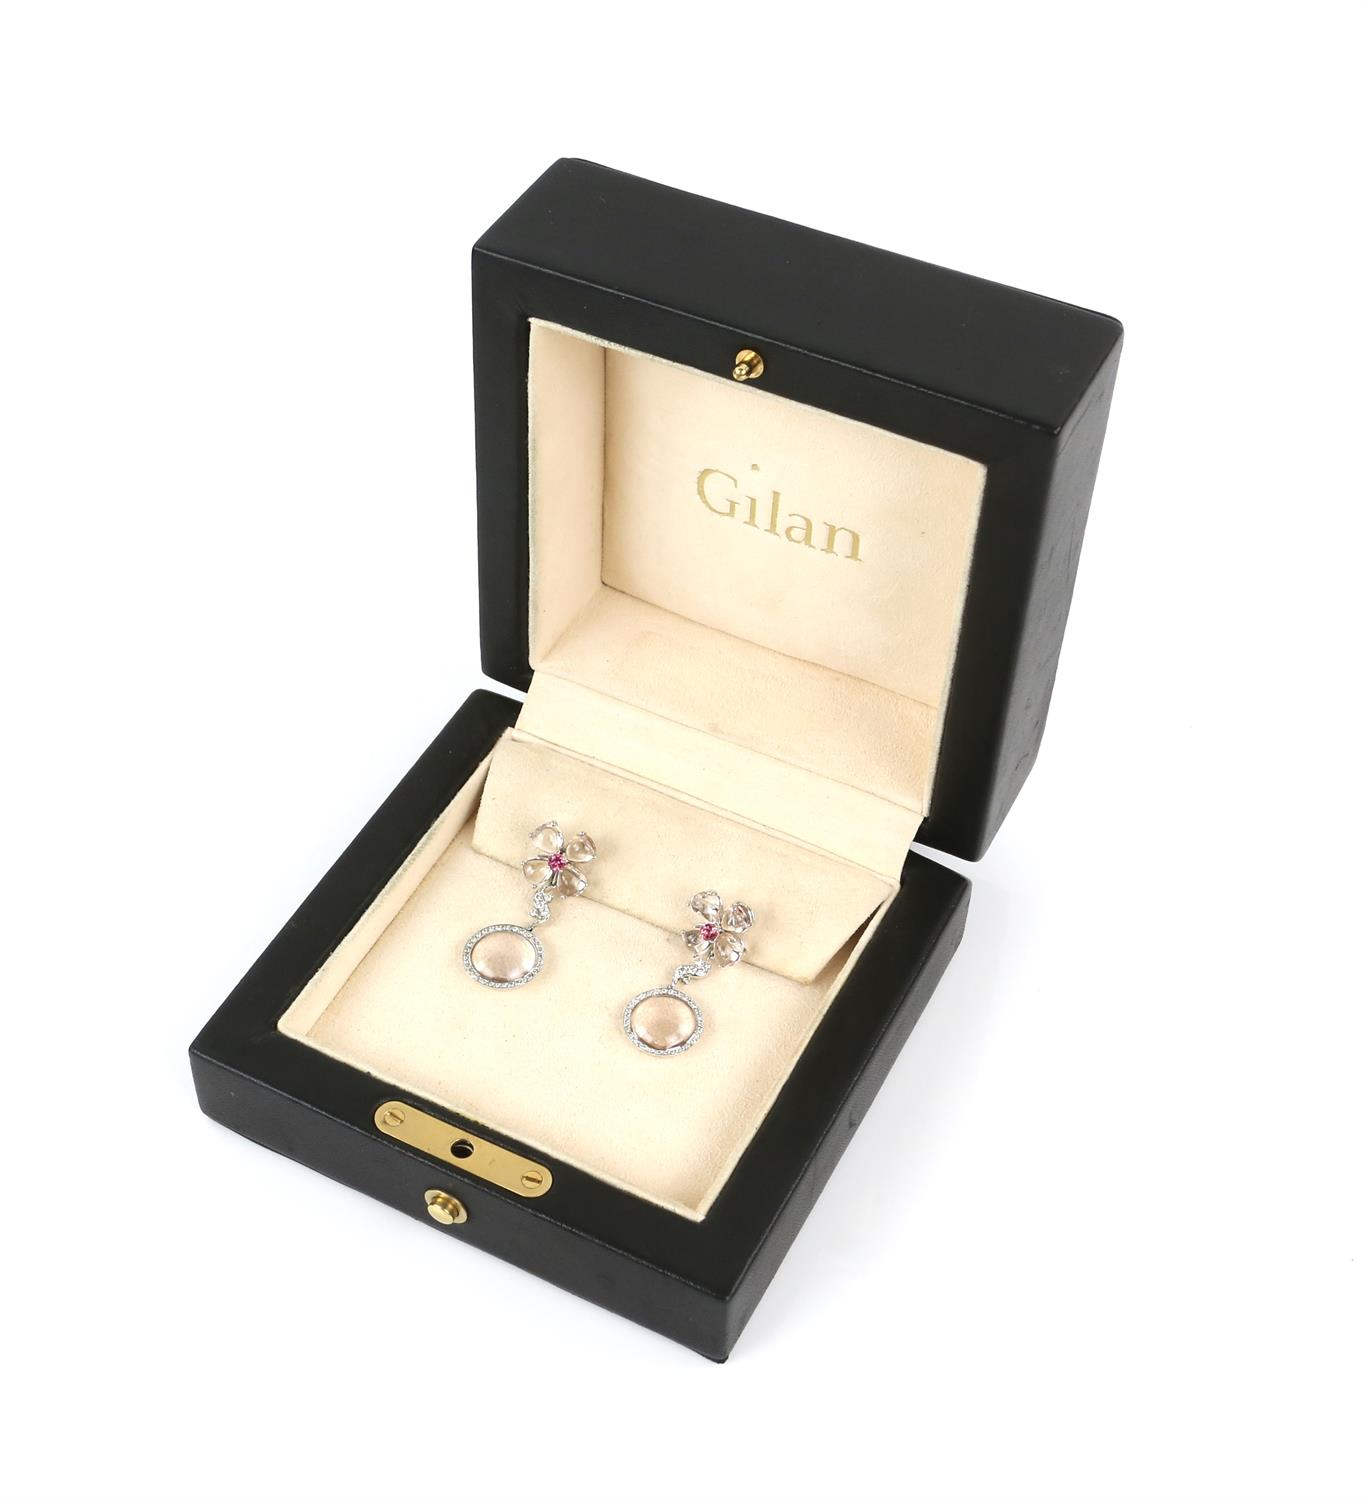 Pair of Gilan drop earrings, designed as a floral motif with a central synthetic pink spinel, - Image 4 of 5